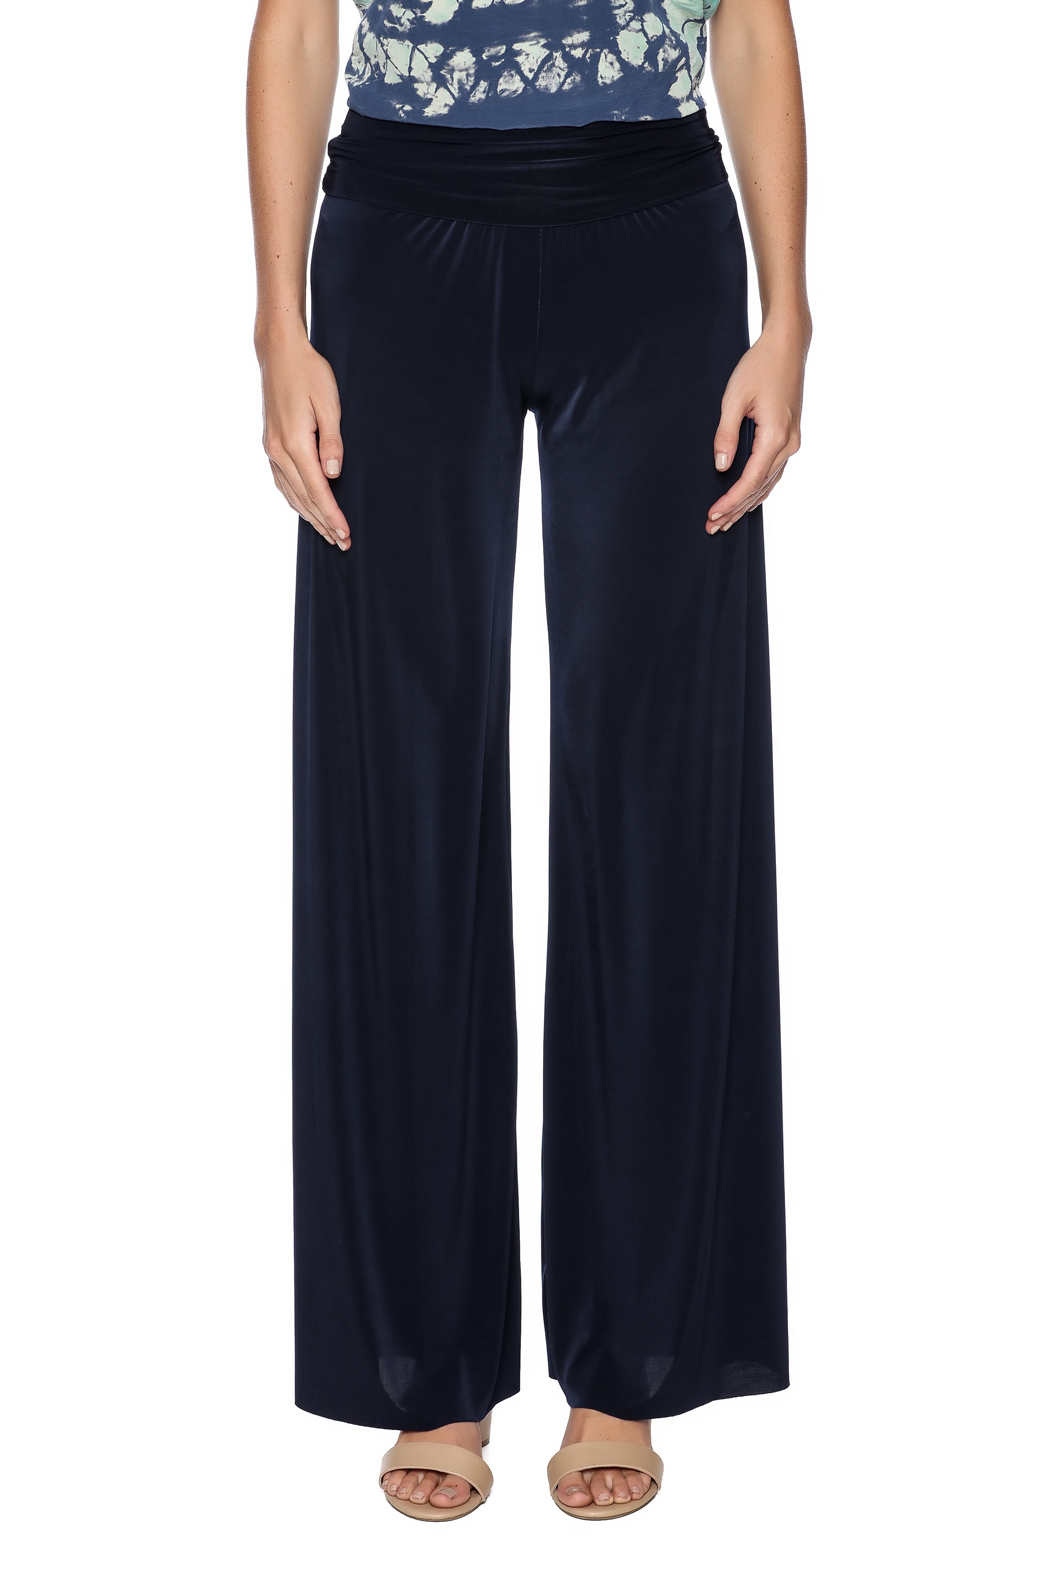 Uptown Navy Palazzo Pants - Side Cropped Image